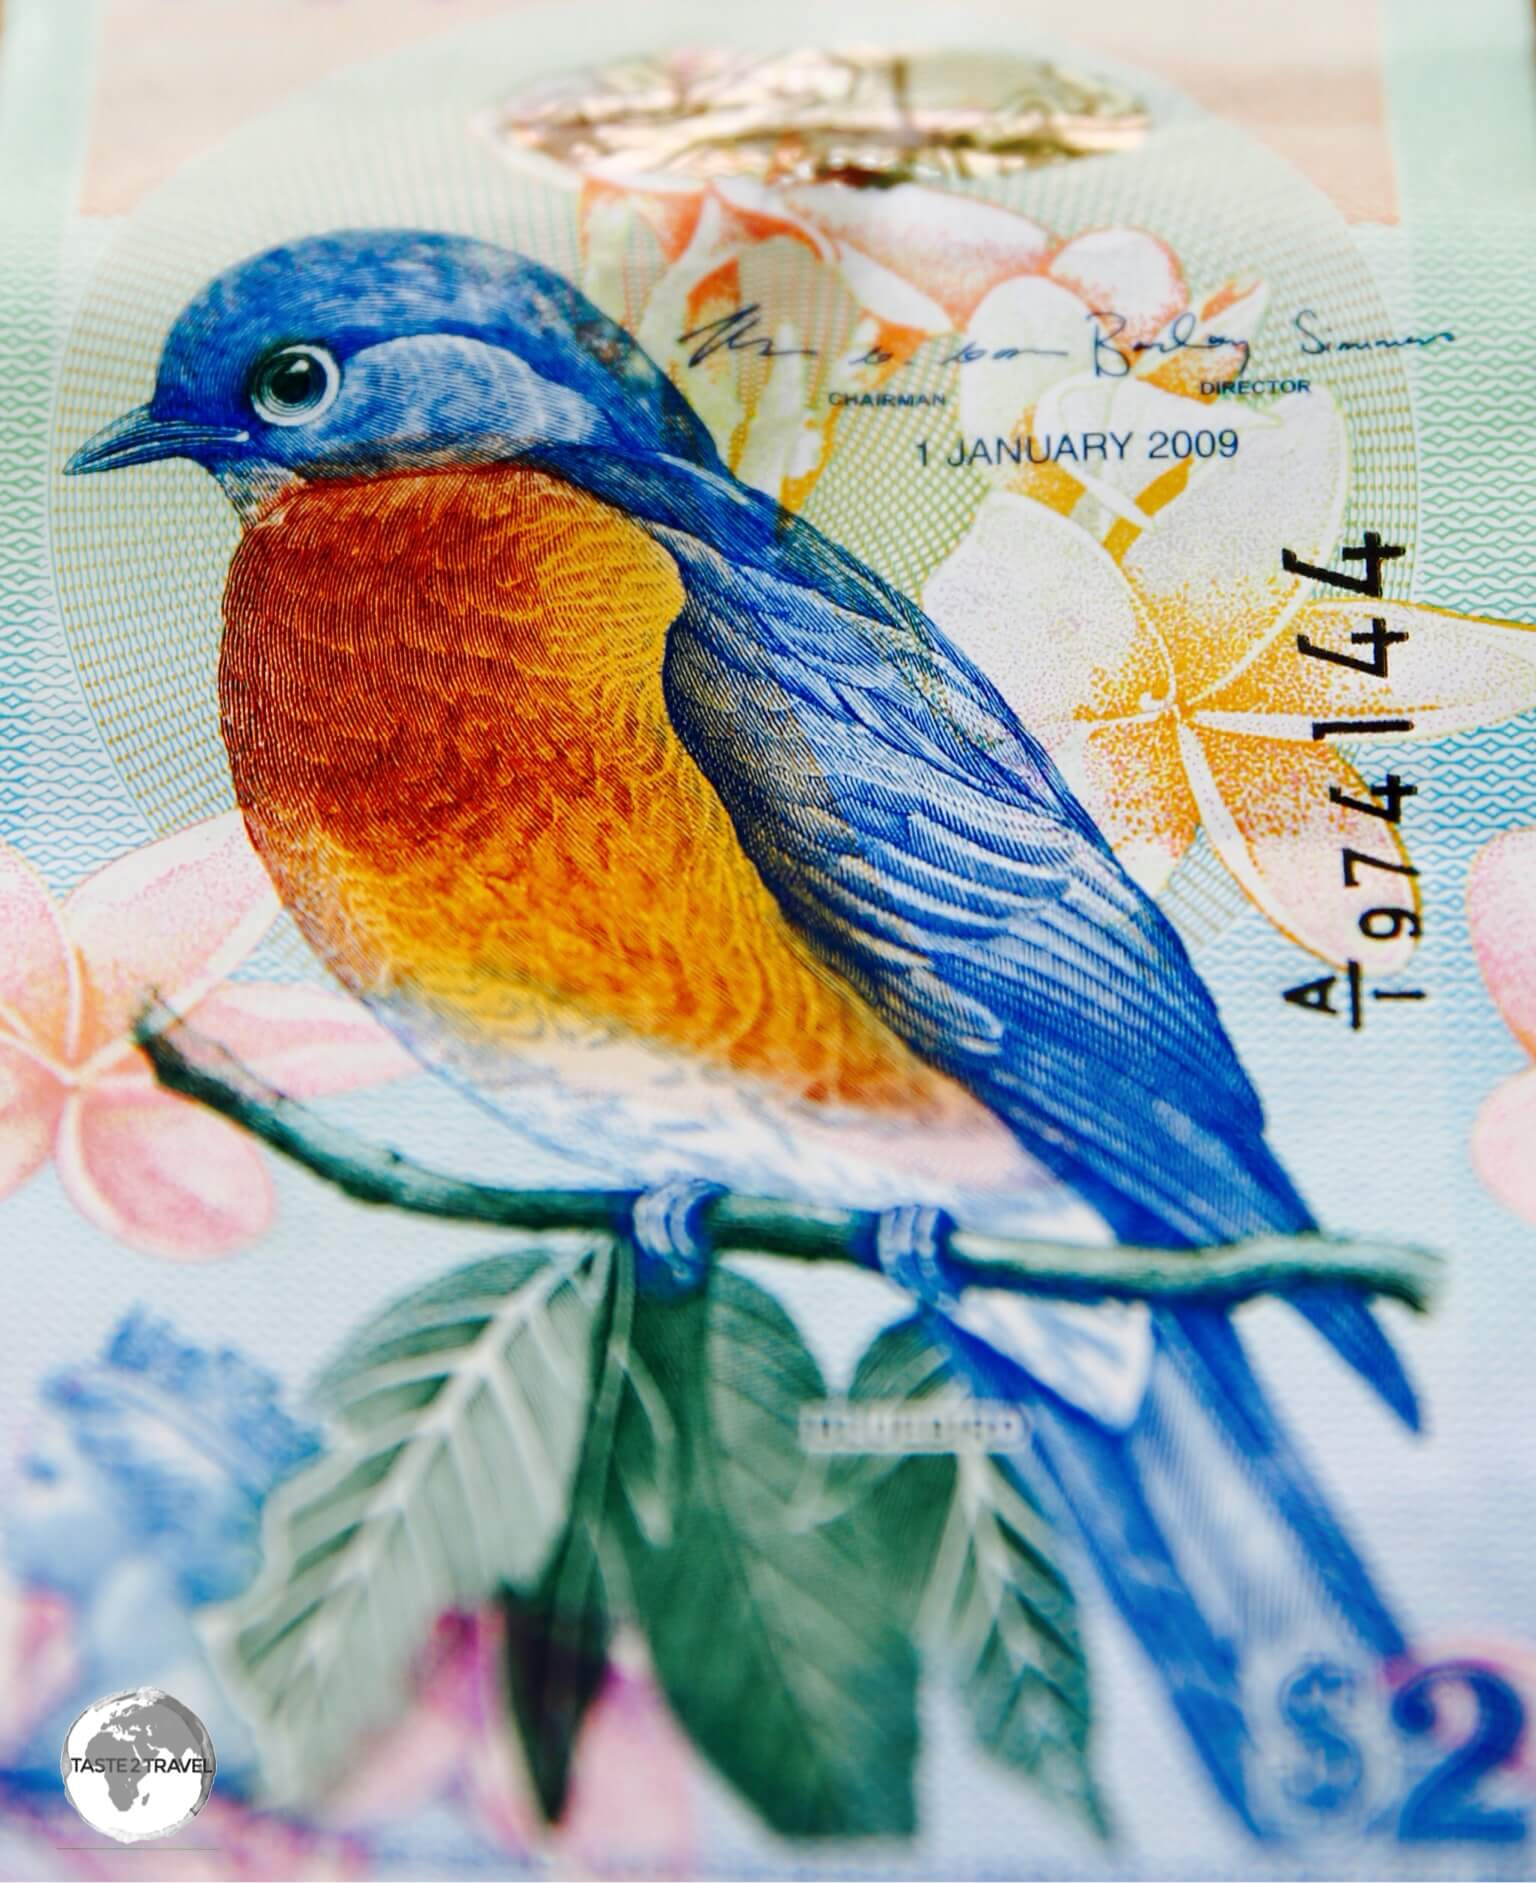 The Bermuda Eastern Blue Bird is featured on the $2 note.